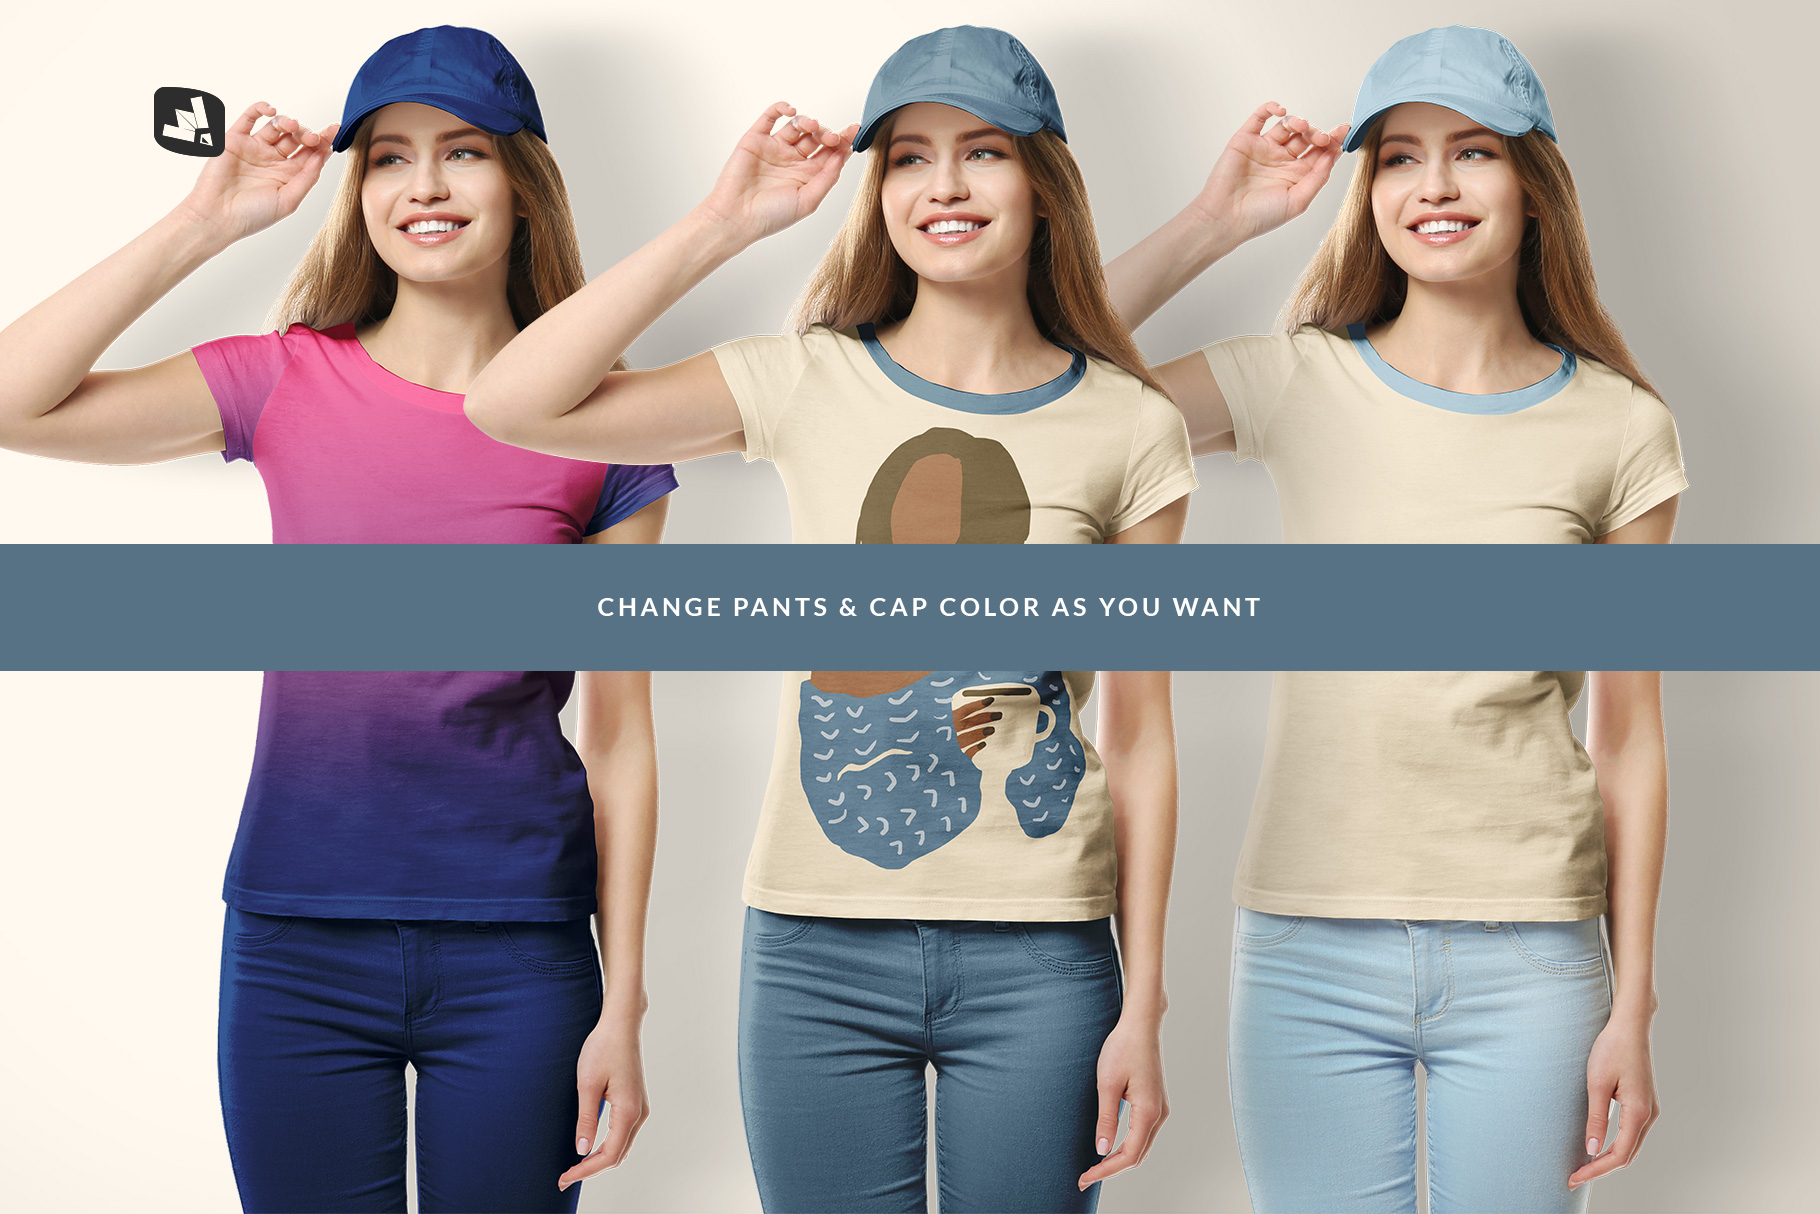 customizable pants and cap color of the women's tshirt with cap mockup